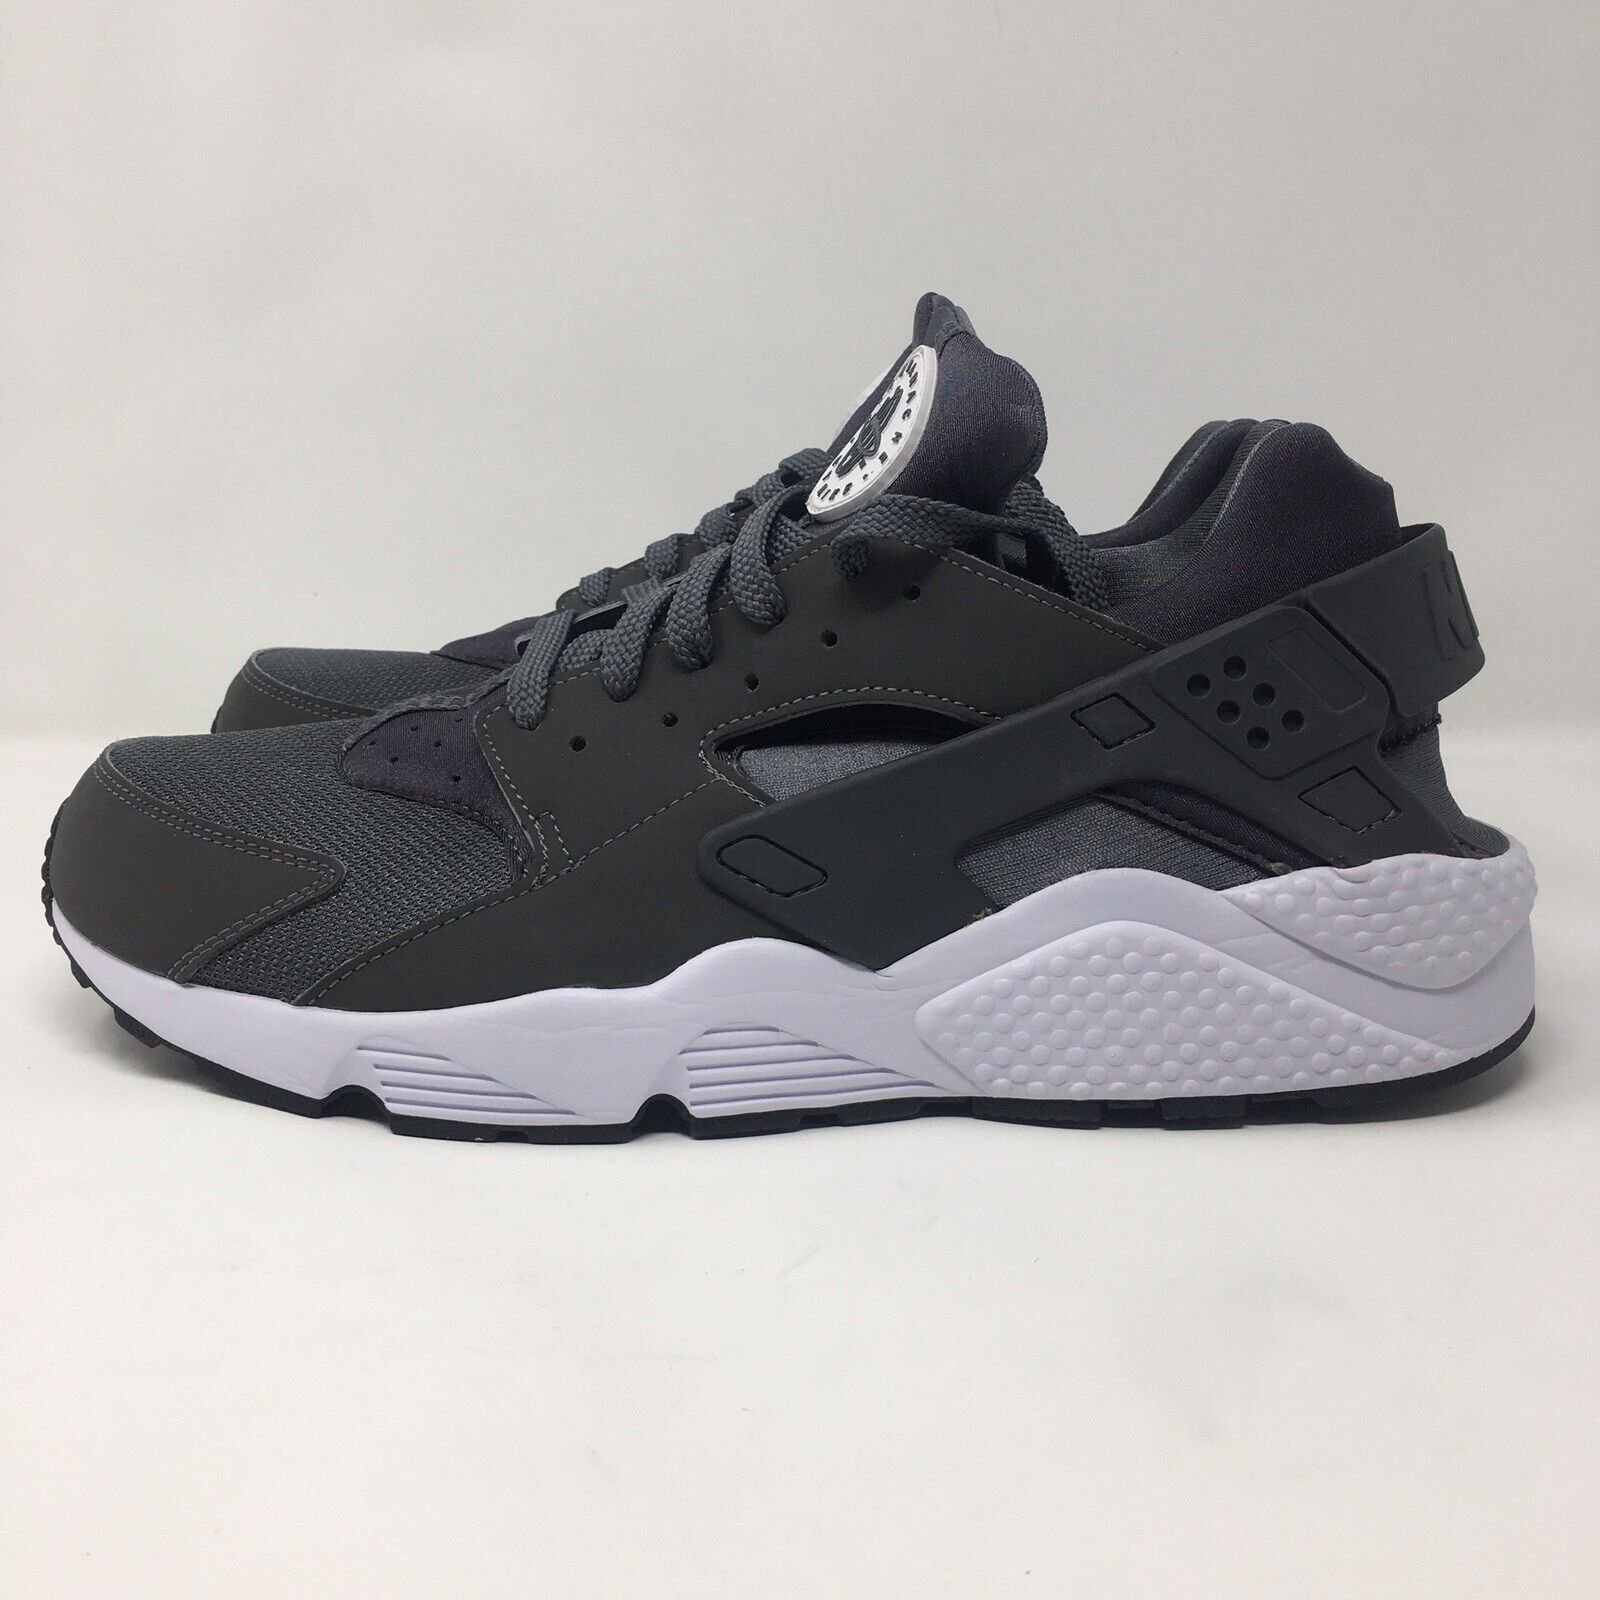 6b463368a0 Nike Air Huarache Mens Grey Athletic Running shoes Size 13 Dark 318429-037  nccbdx3664-Athletic Shoes